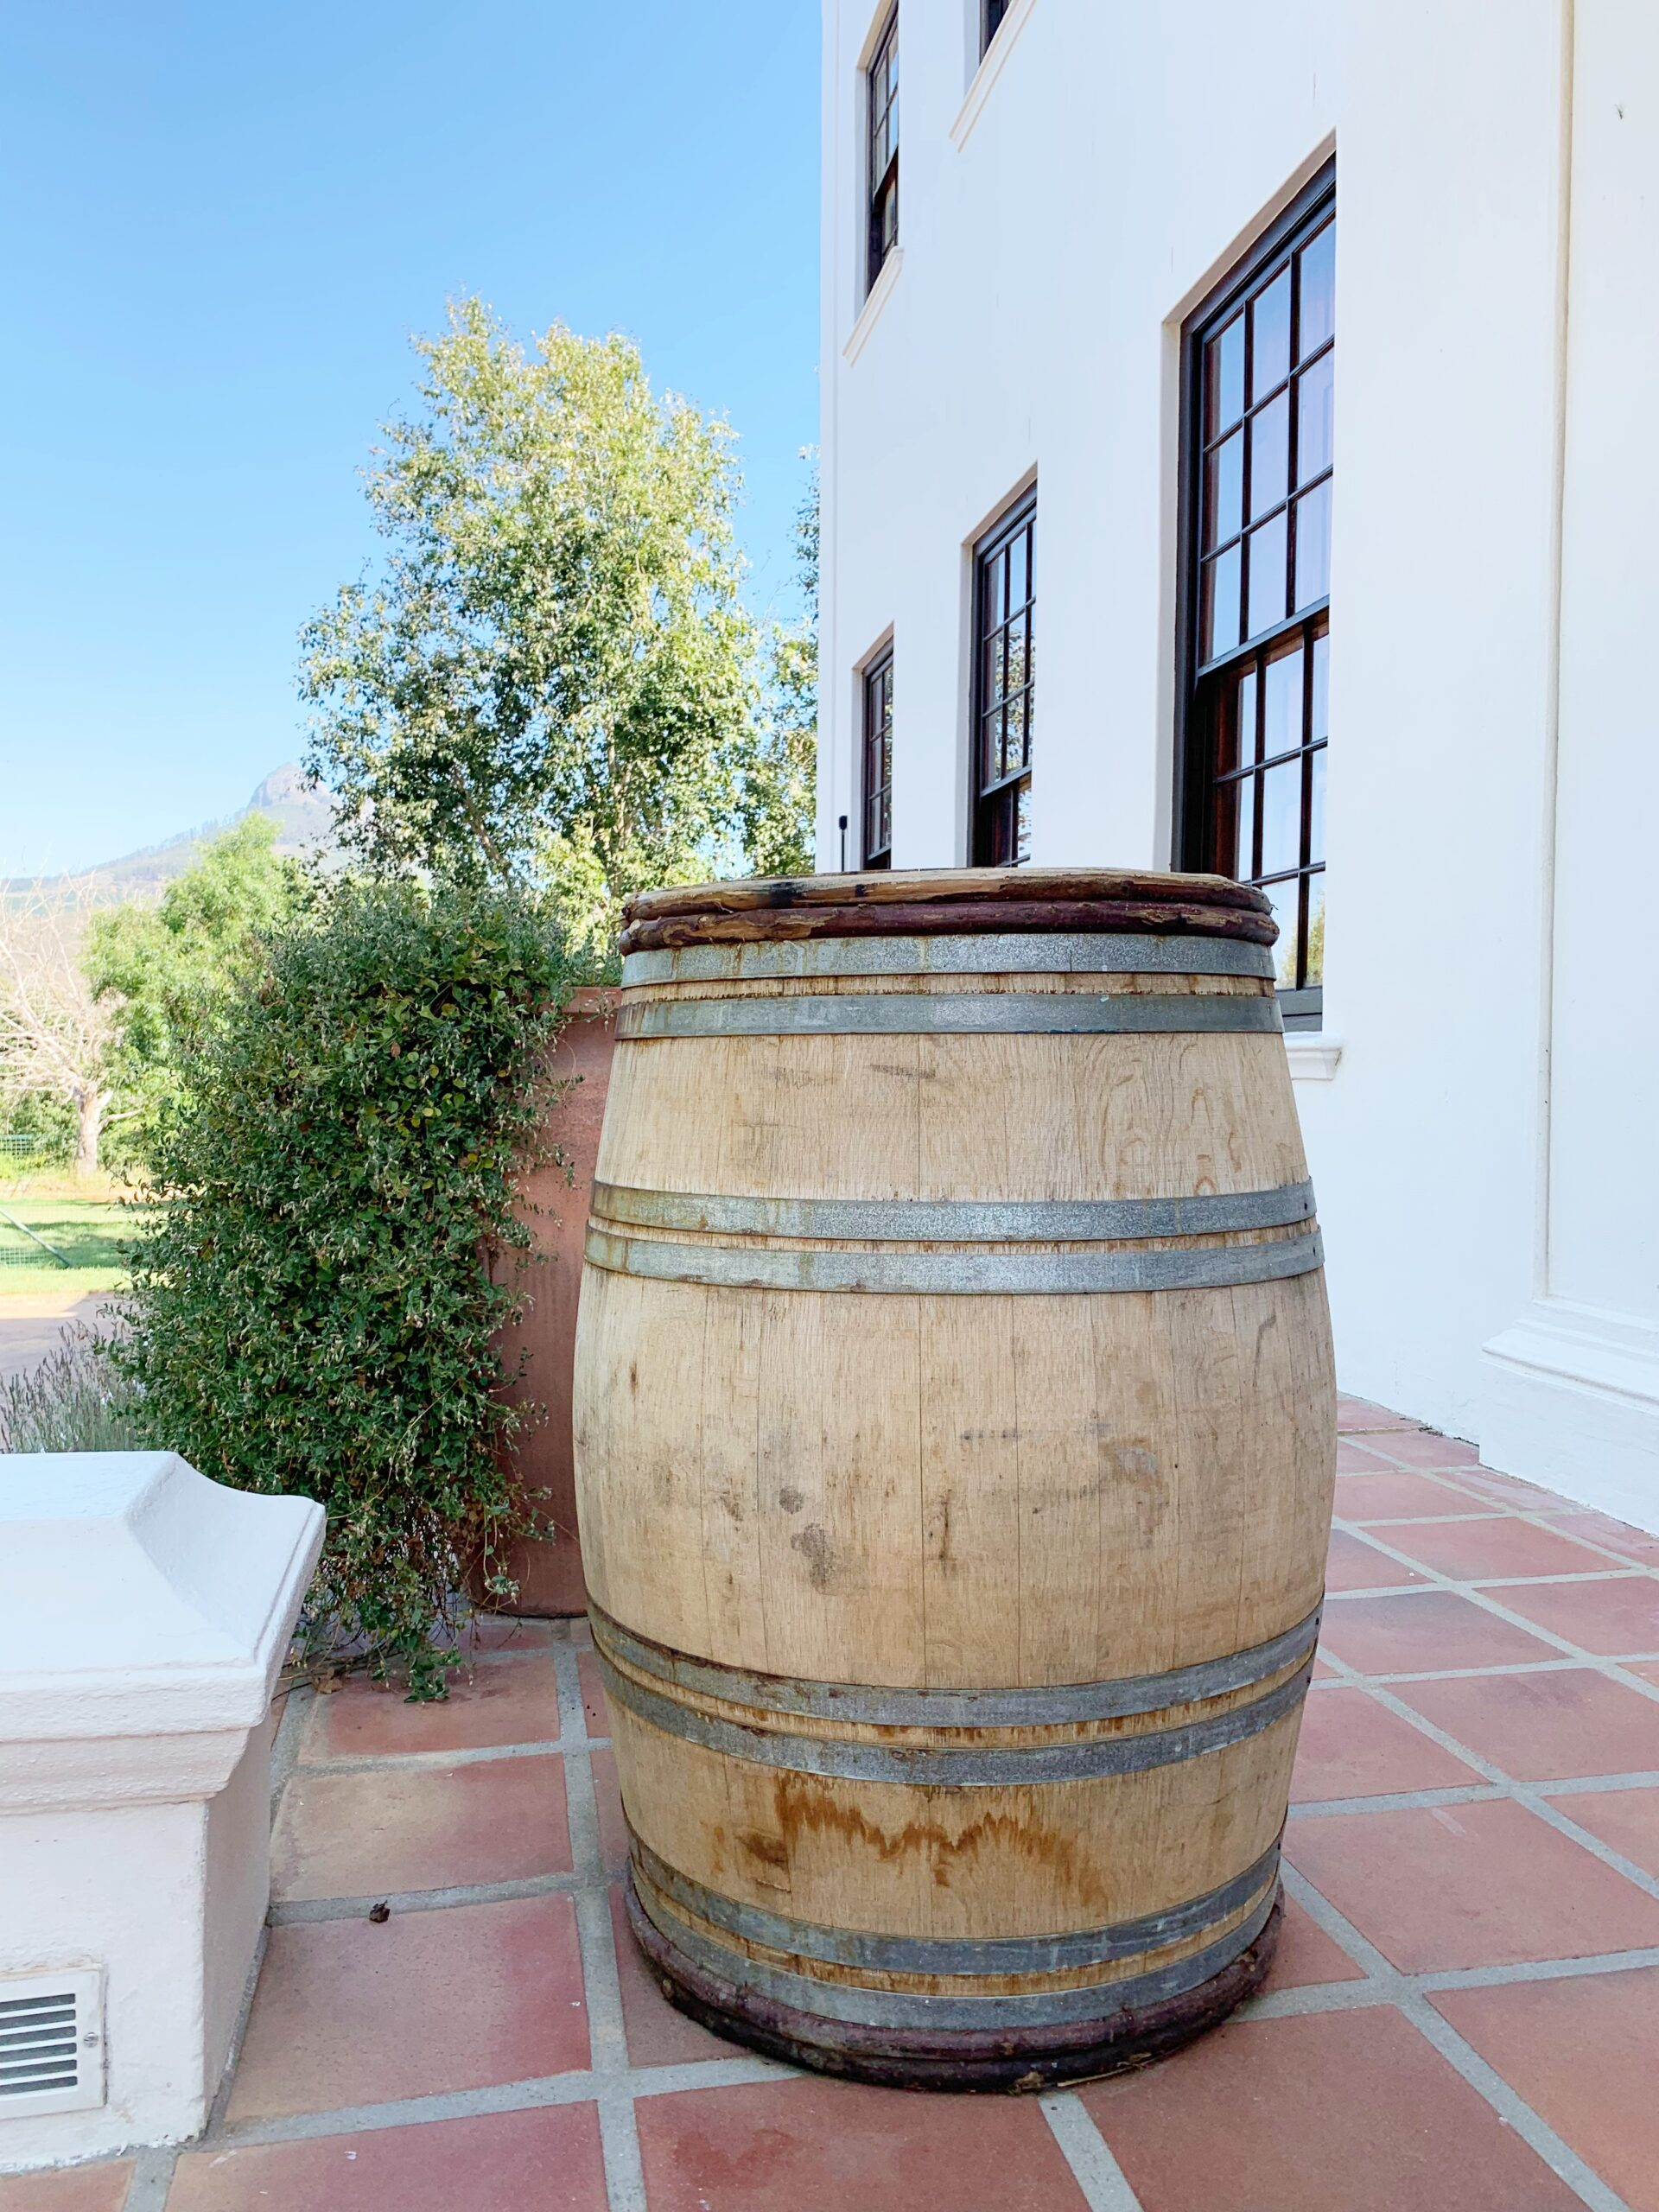 Wine barrel in South Africa